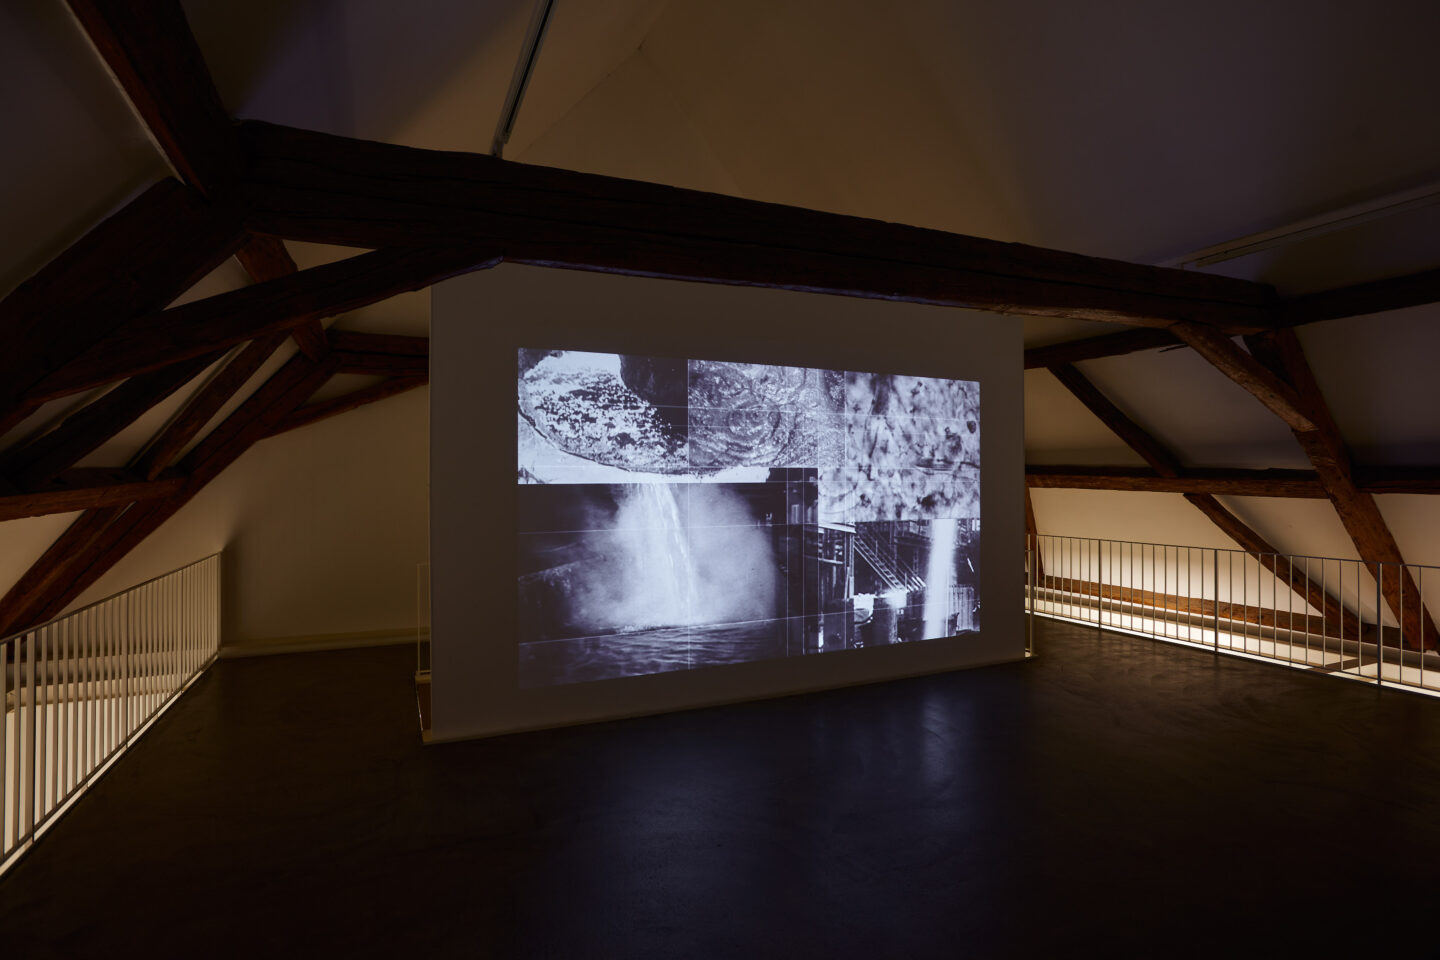 Exhibition View Groupshow «Motor; view on Alexandra Navratil, Under Saturn (Act 1), projection, 2018» at Kunstraum Riehen, Riehen, Basel, 2020 / Photo: Moritz Schermbach / Courtesy: the artist